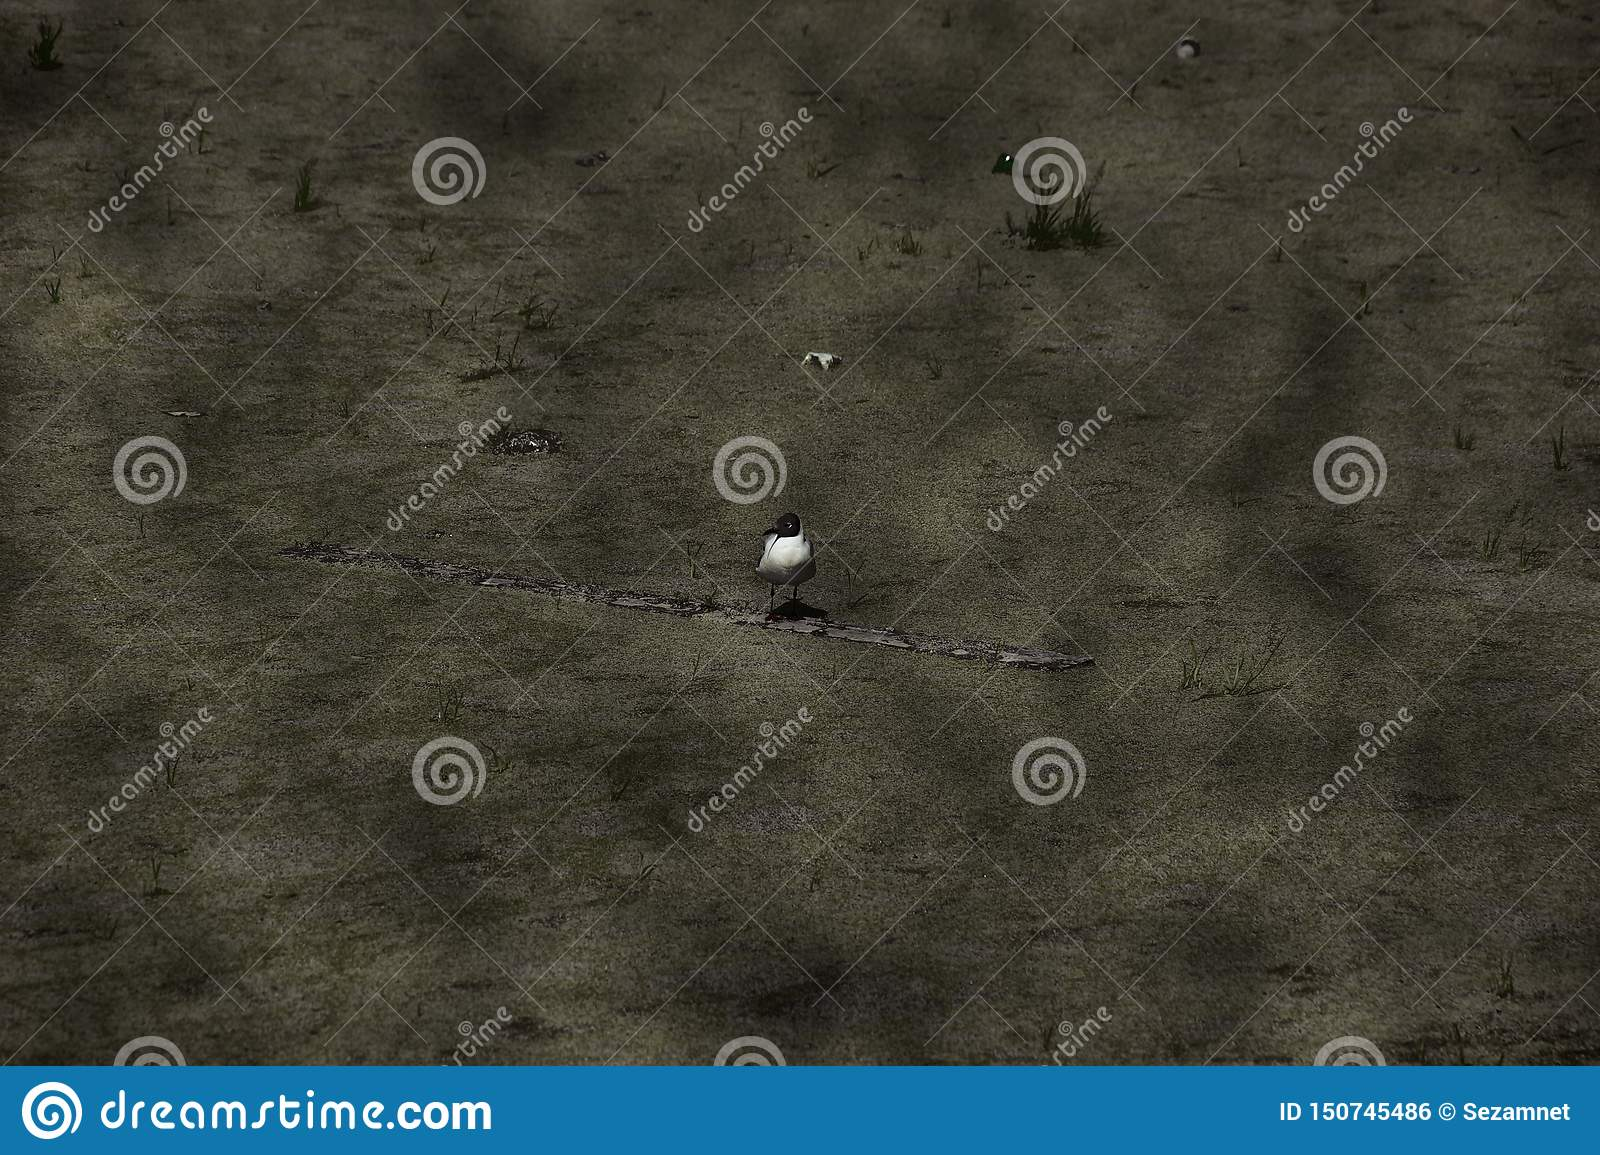 Concept of ecology environmental pollution overgrown Seagull on a dirty pond